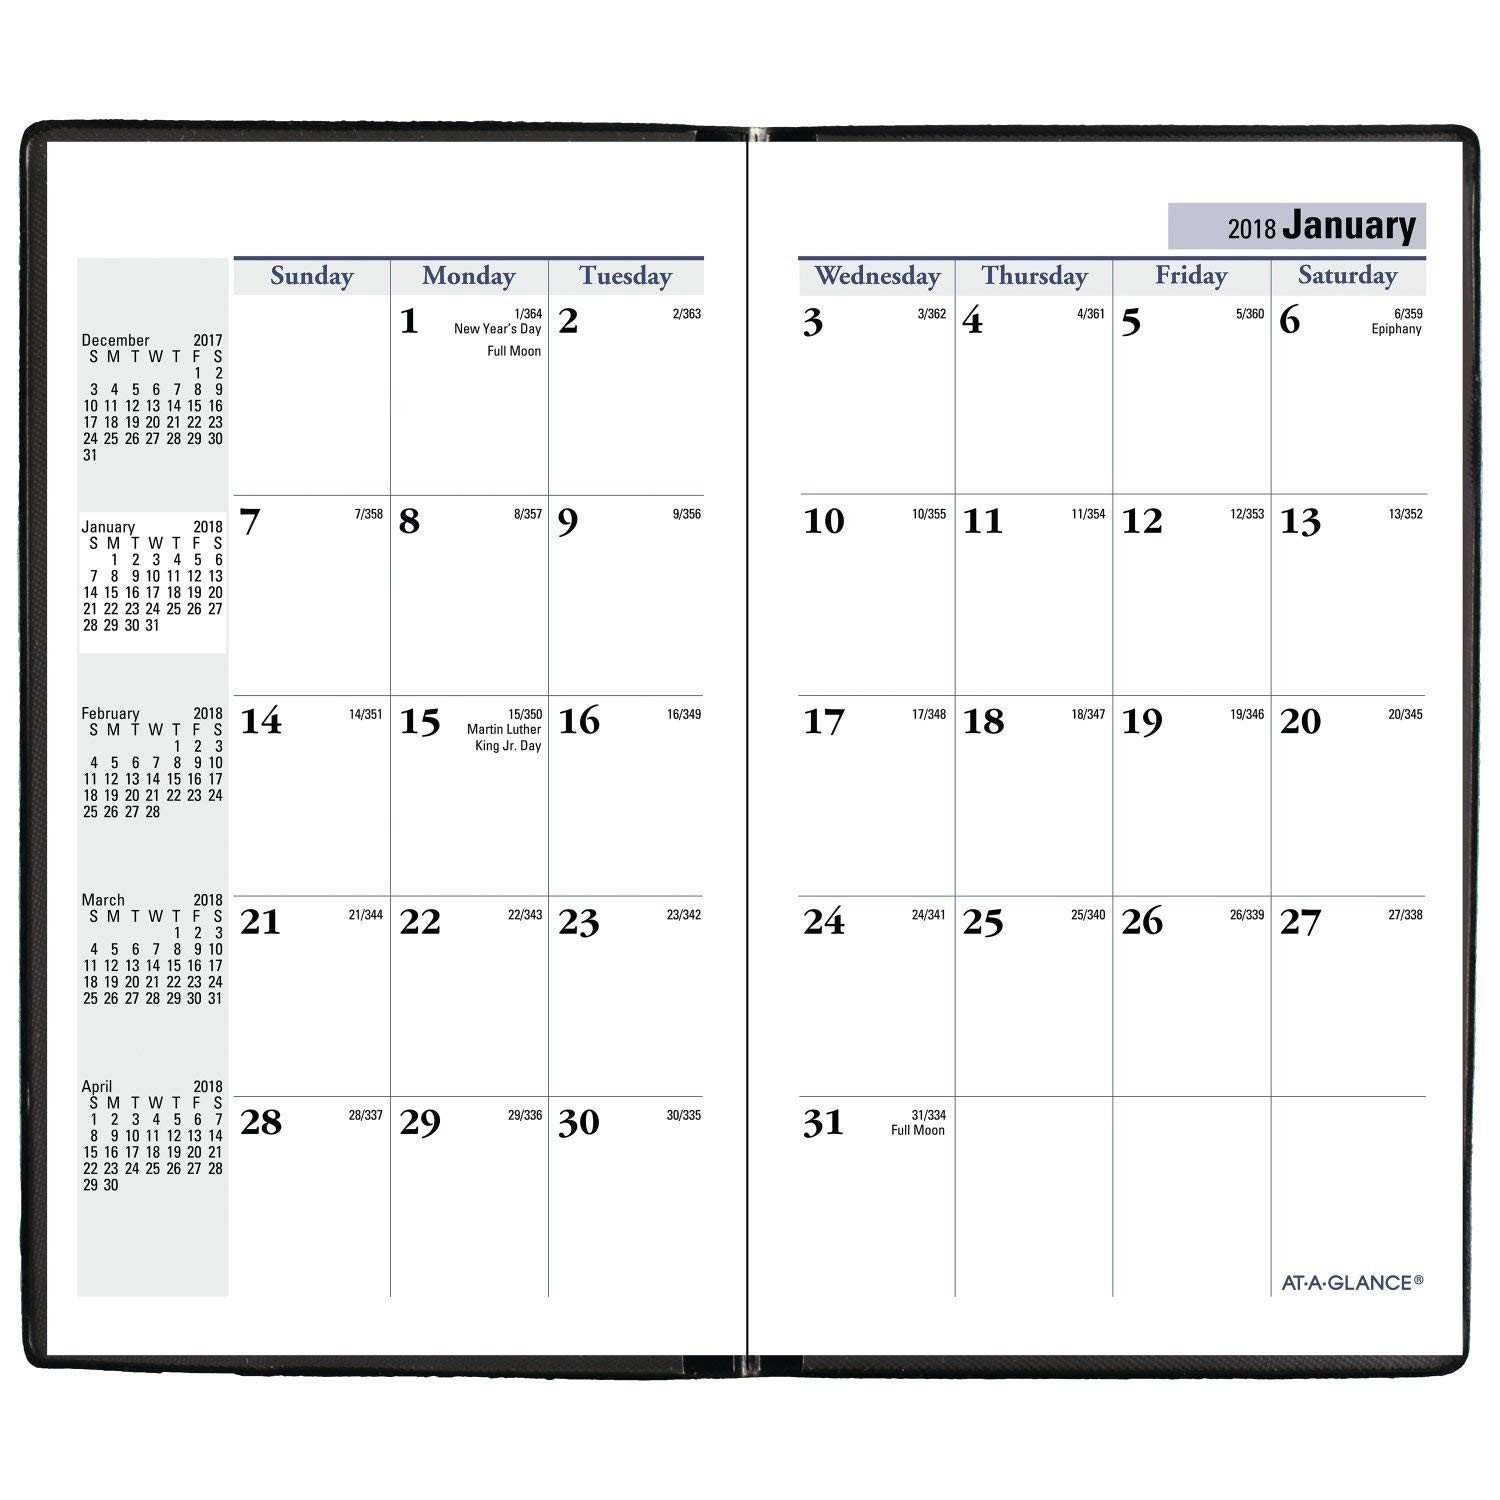 Info Intended For Staples At A Glance Calendar 2019 – Calendar Calendar 2019 Staples